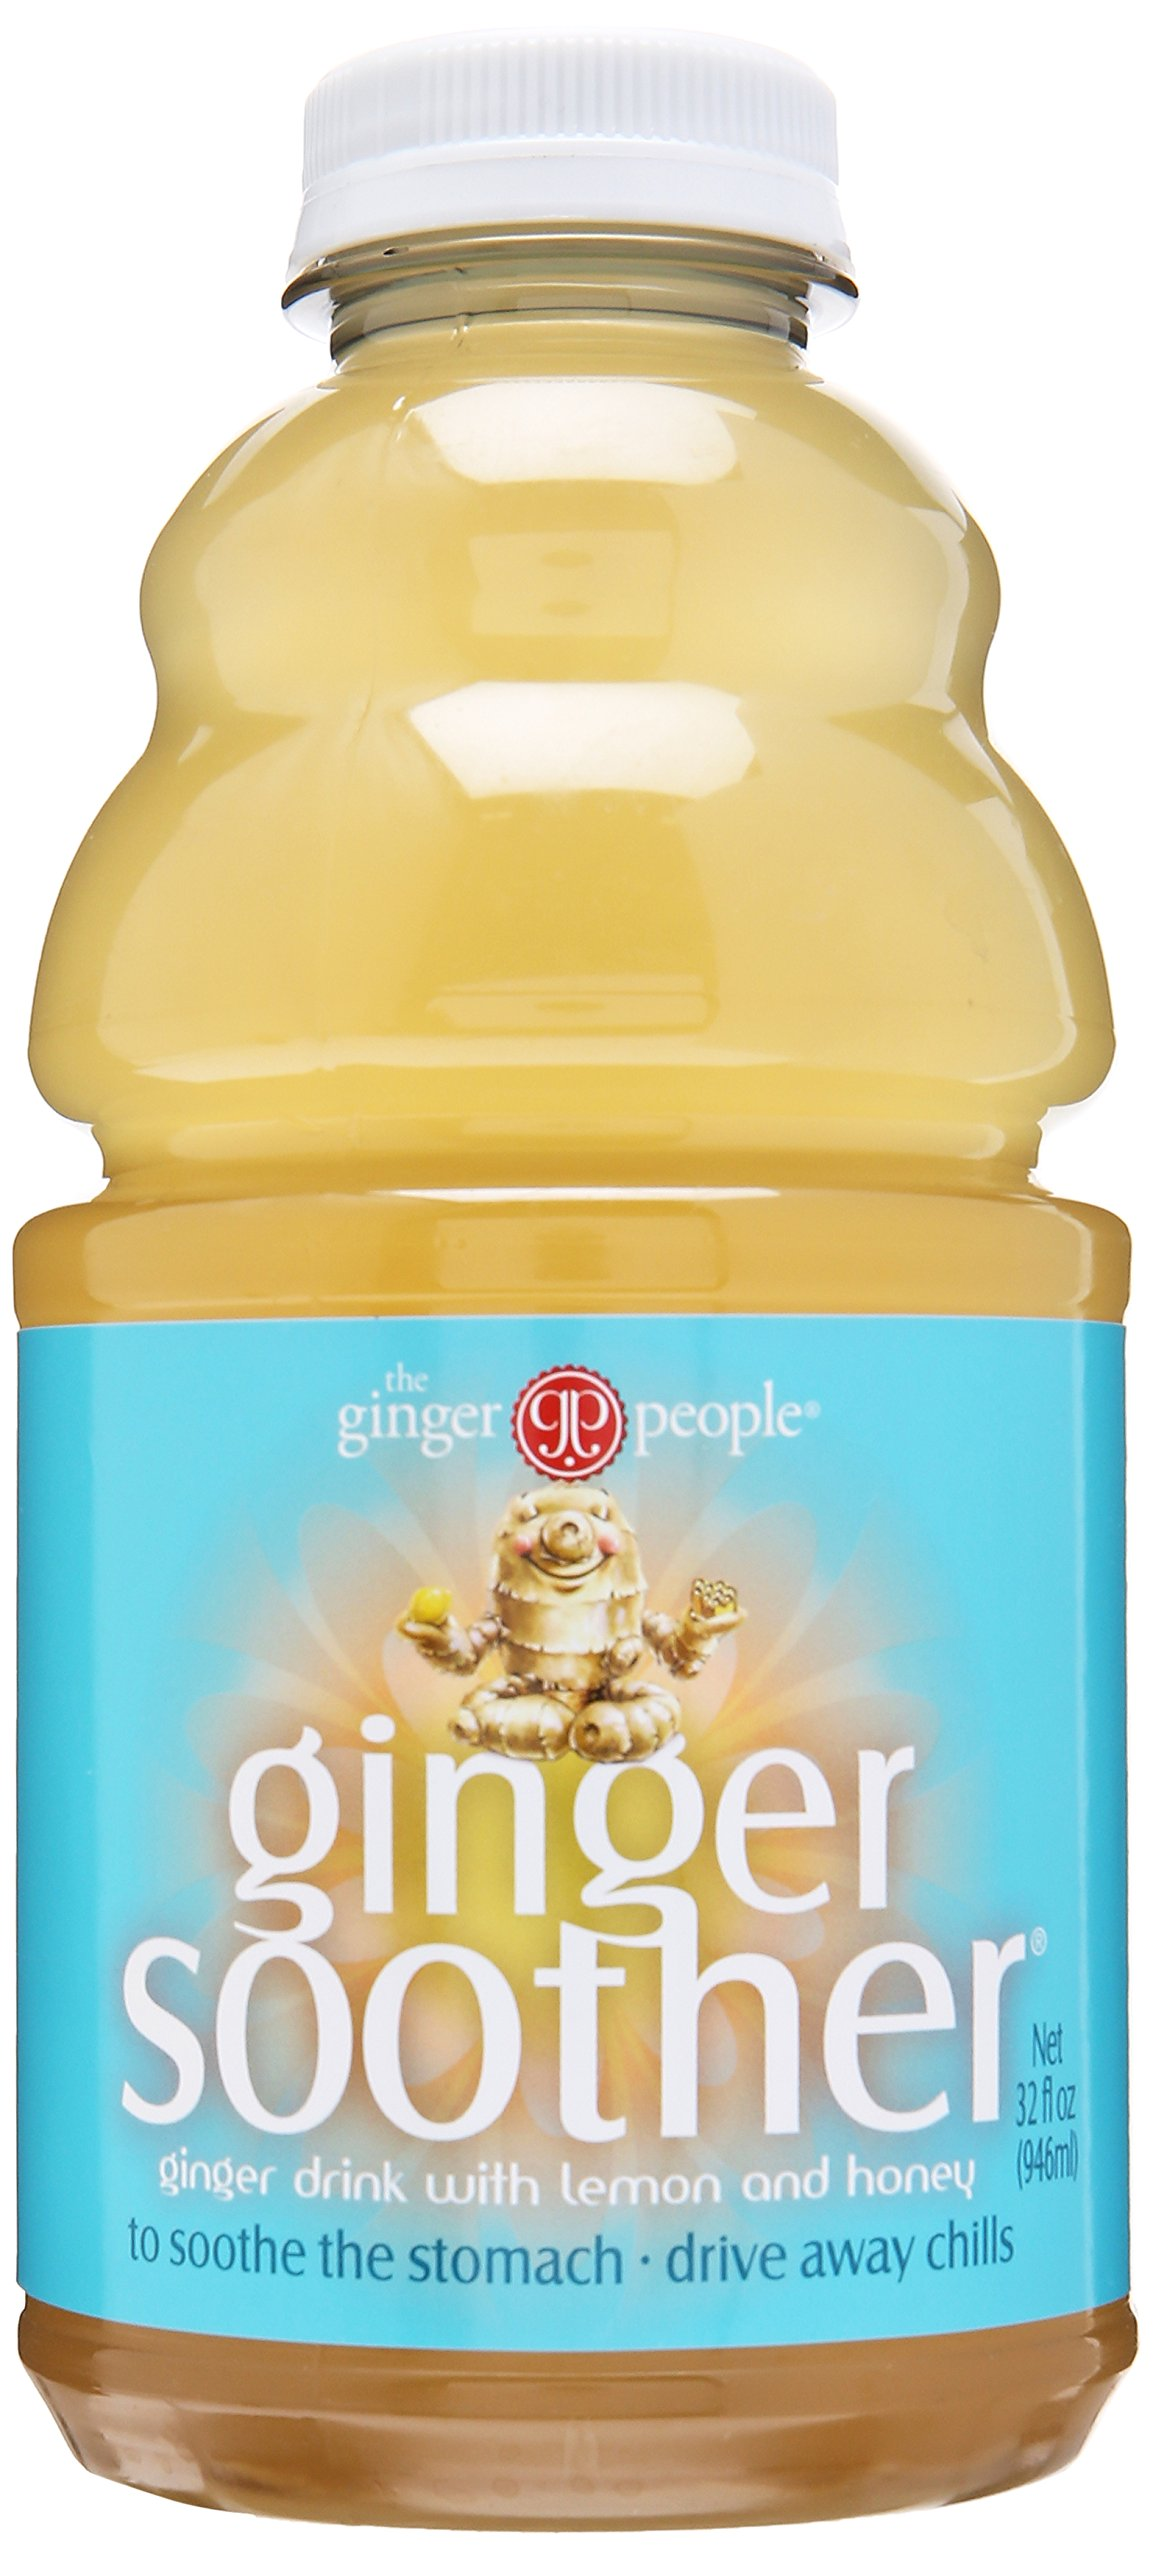 GINGER PEOPLE GINGER SOOTHER